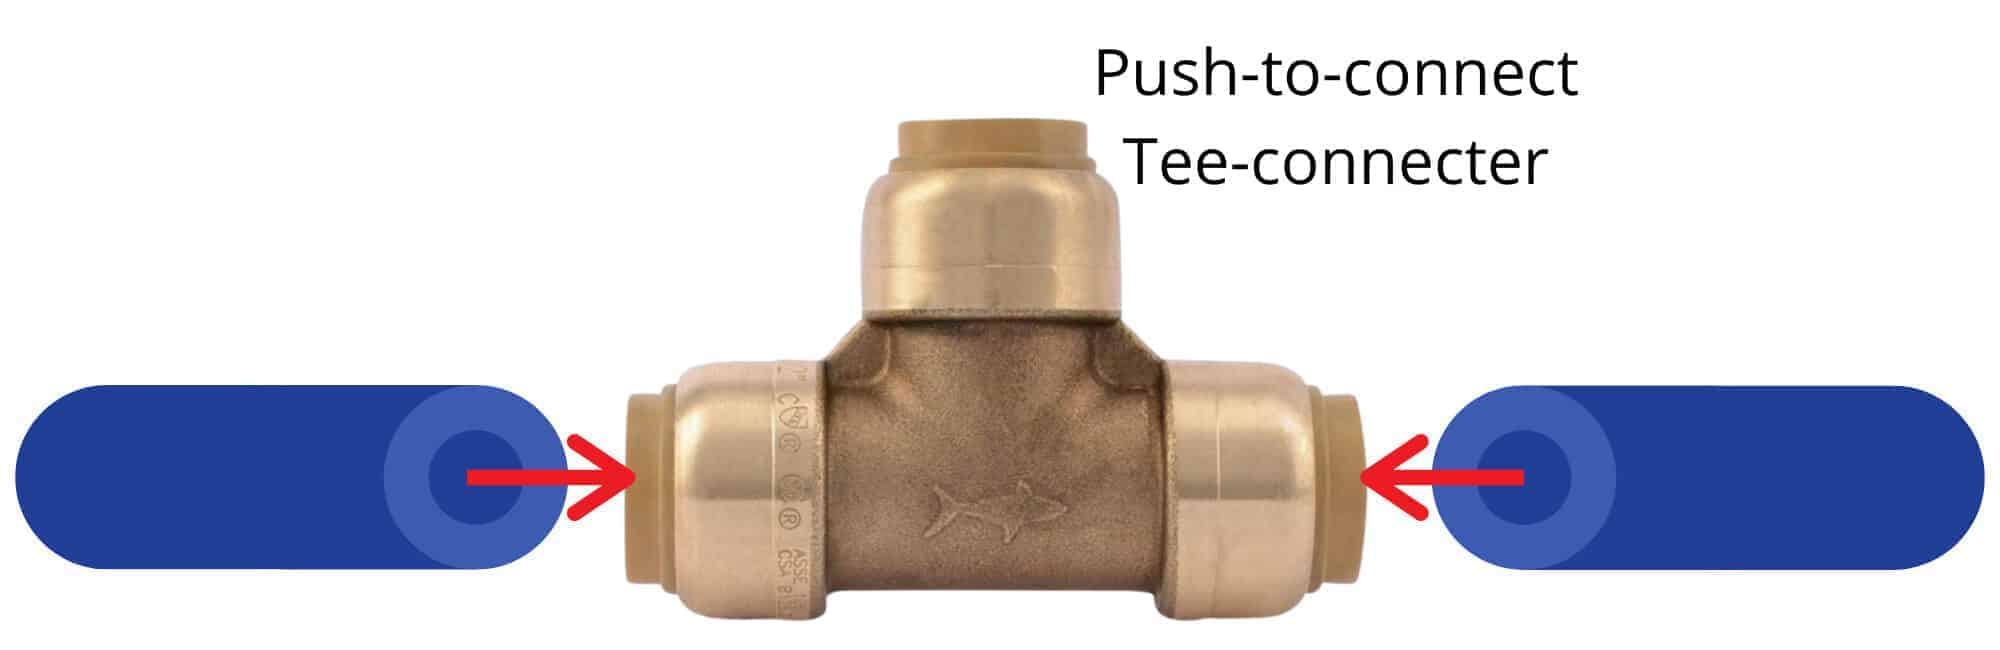 Attaching a cut PEX pipe to a push-to-connect tee-connecter